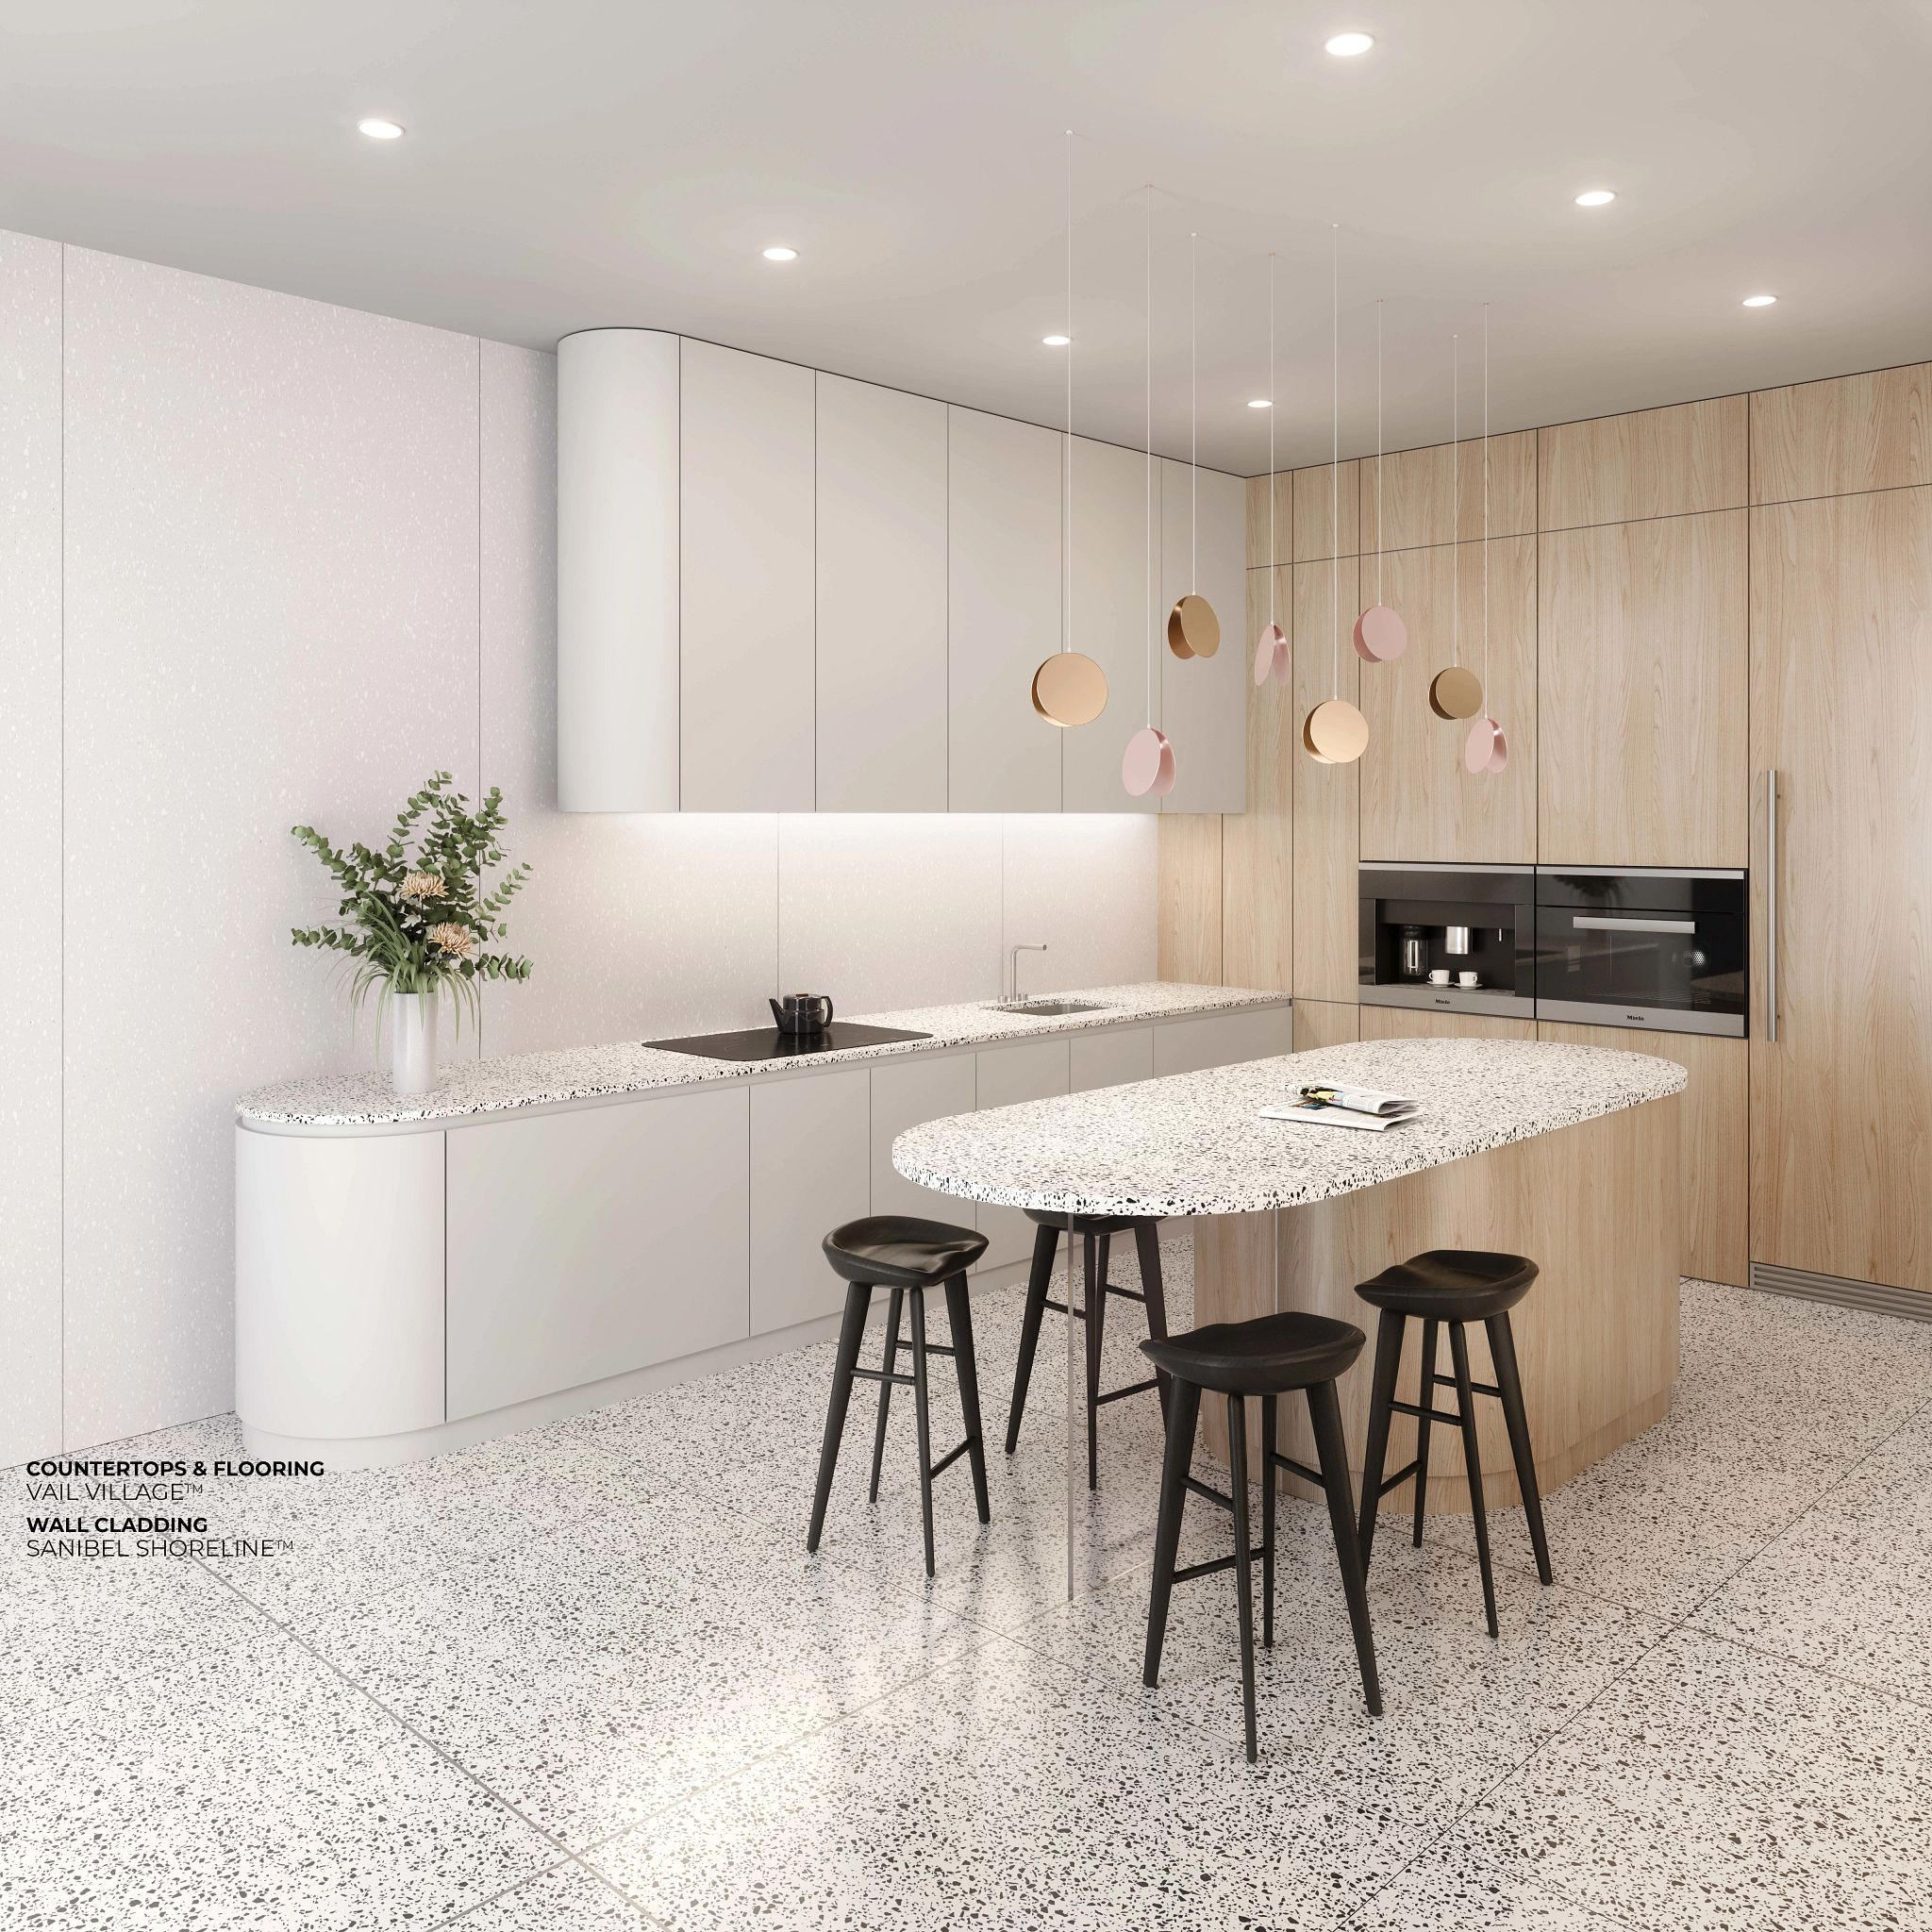 A picture containing floor, indoor, wall, ceiling  Description automatically generated